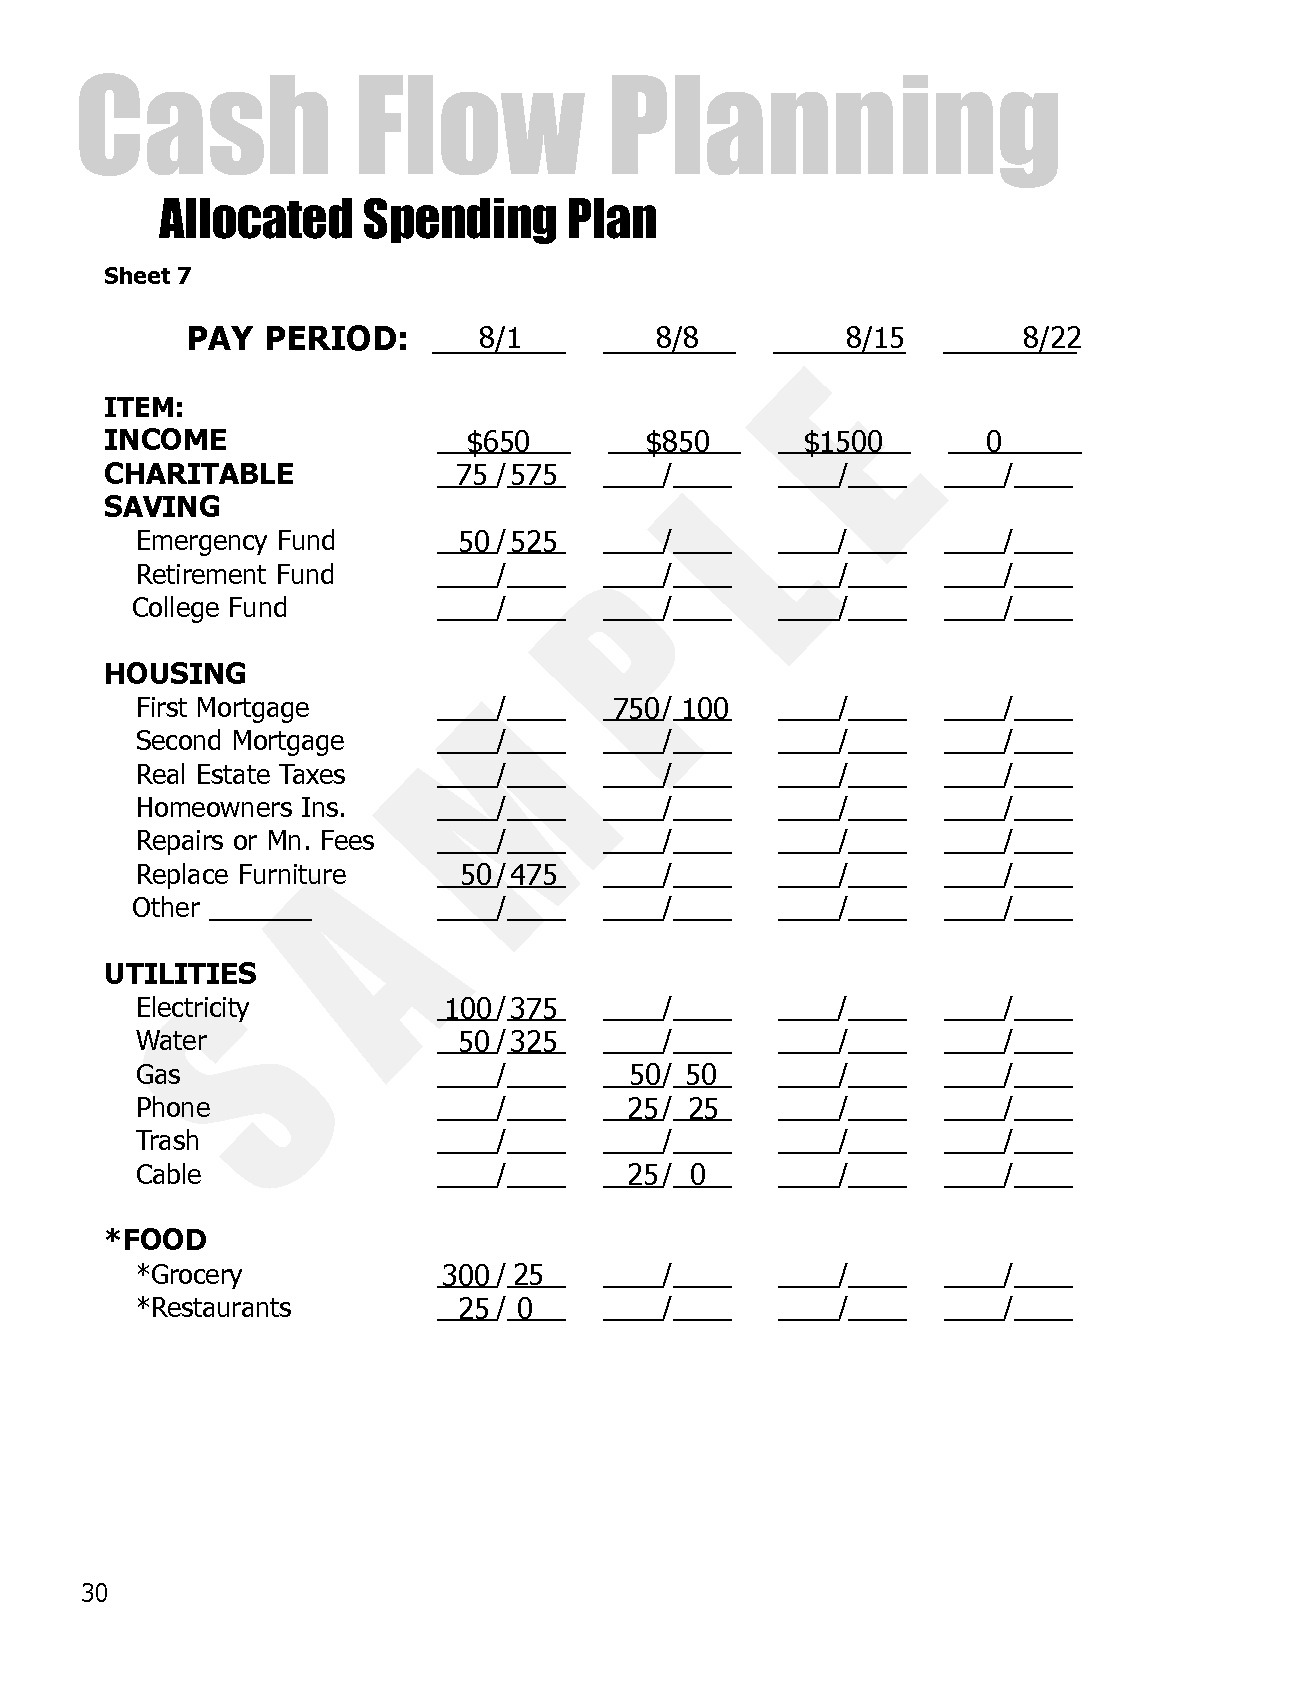 How to Use Dave Ramsey's Allocated Spending Plan | Dave ramsey ...